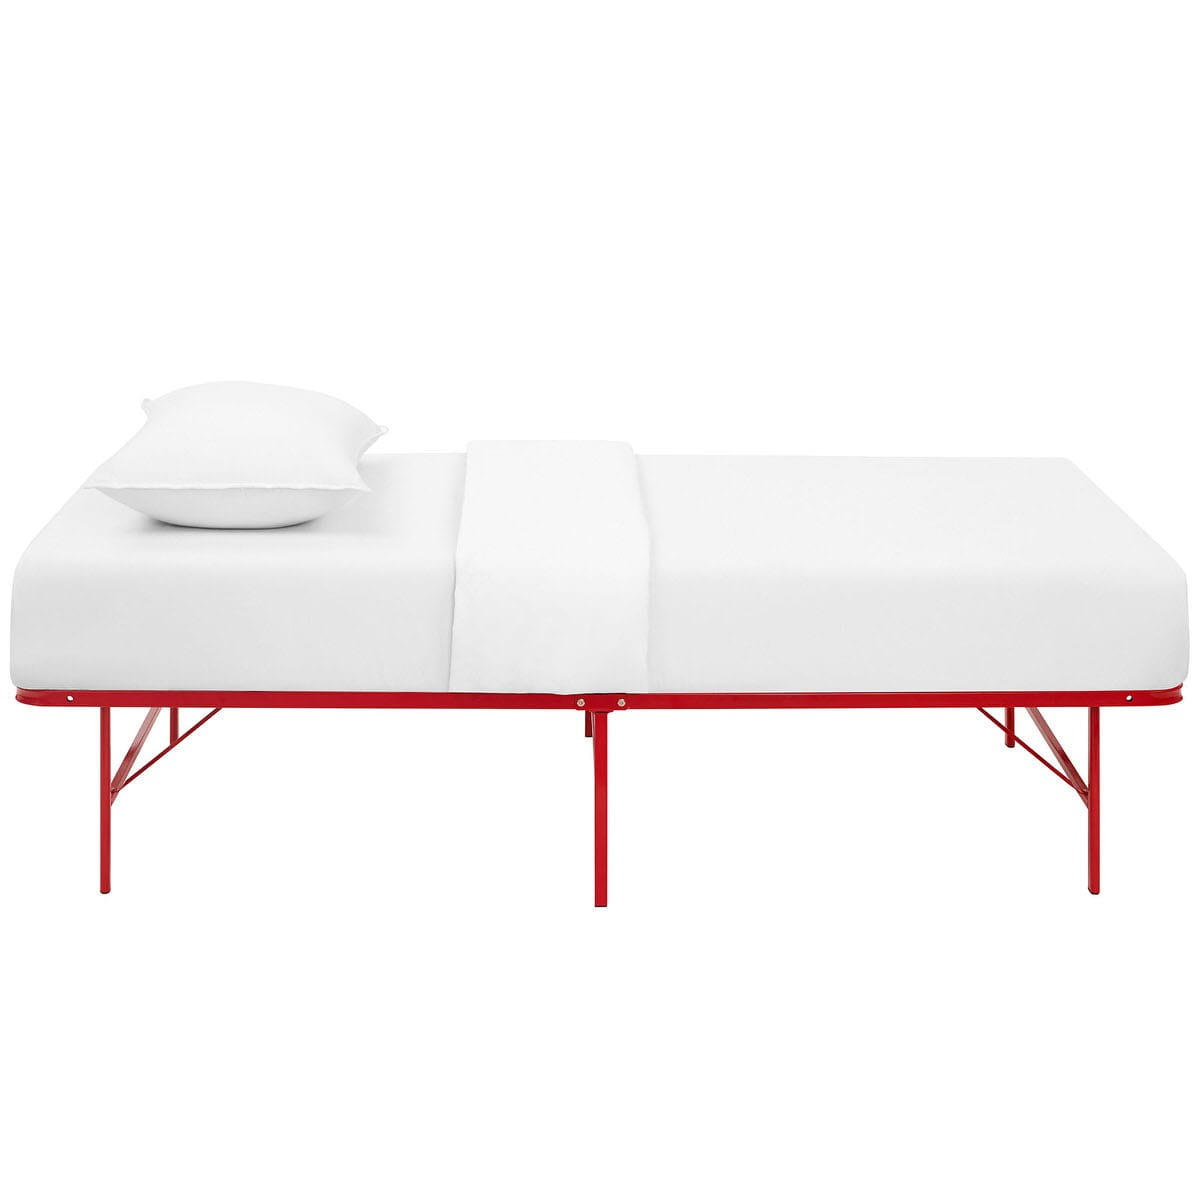 Horizon Twin Stainless Steel Bed Frame Red by Modern Living